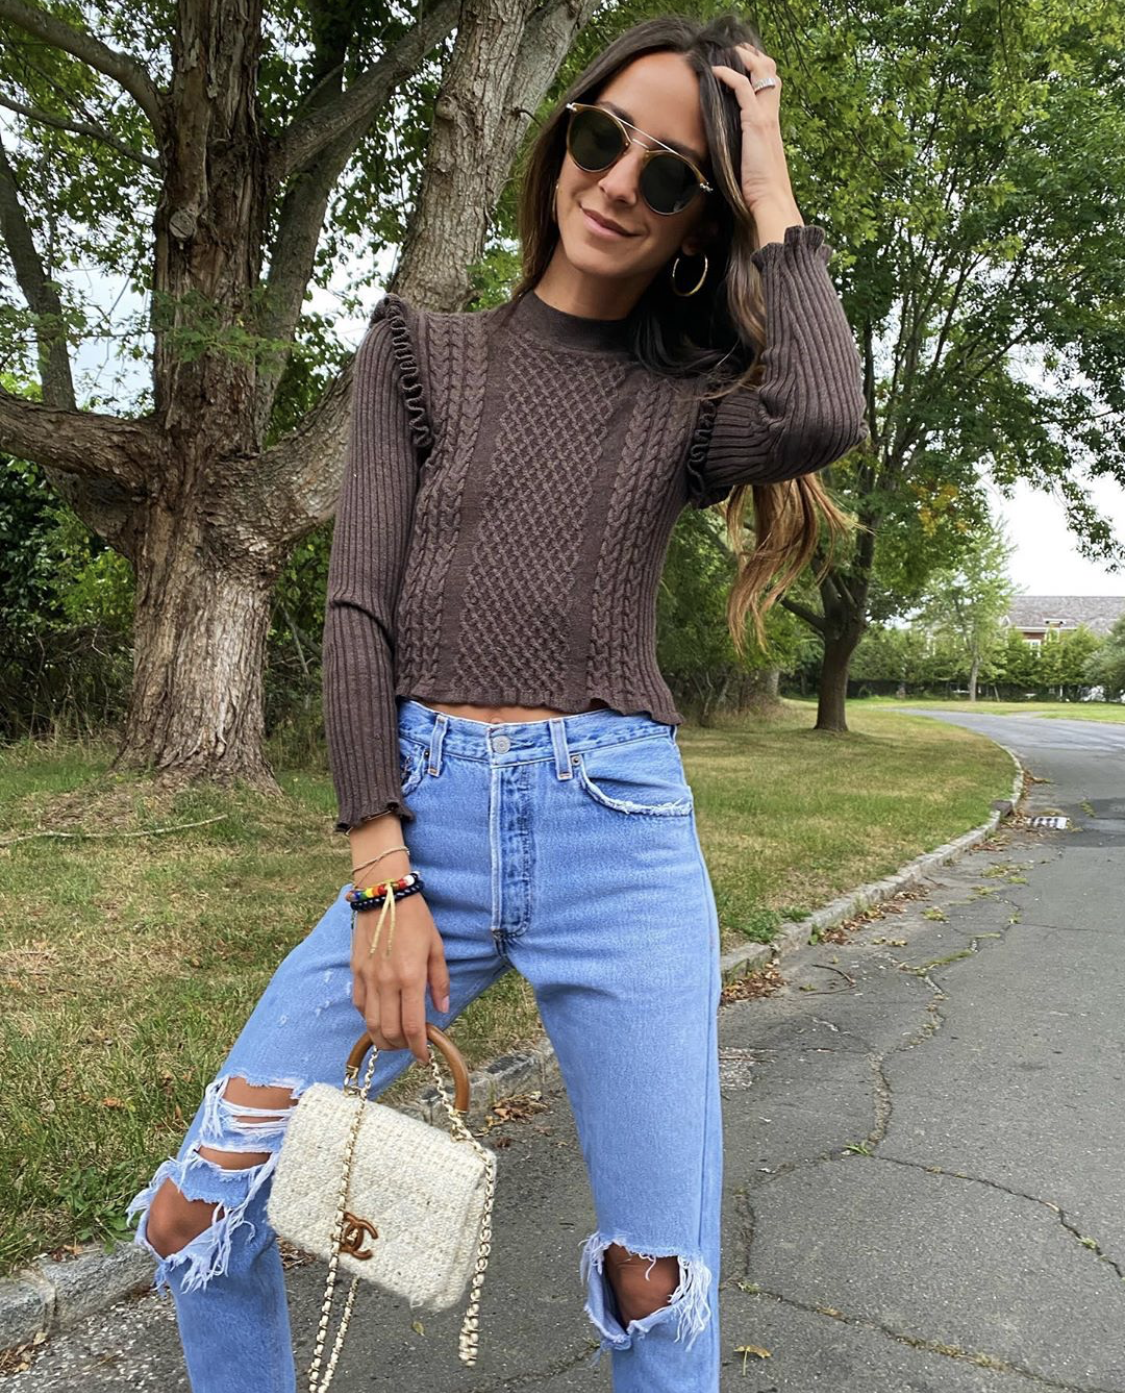 arielle wearing sara top